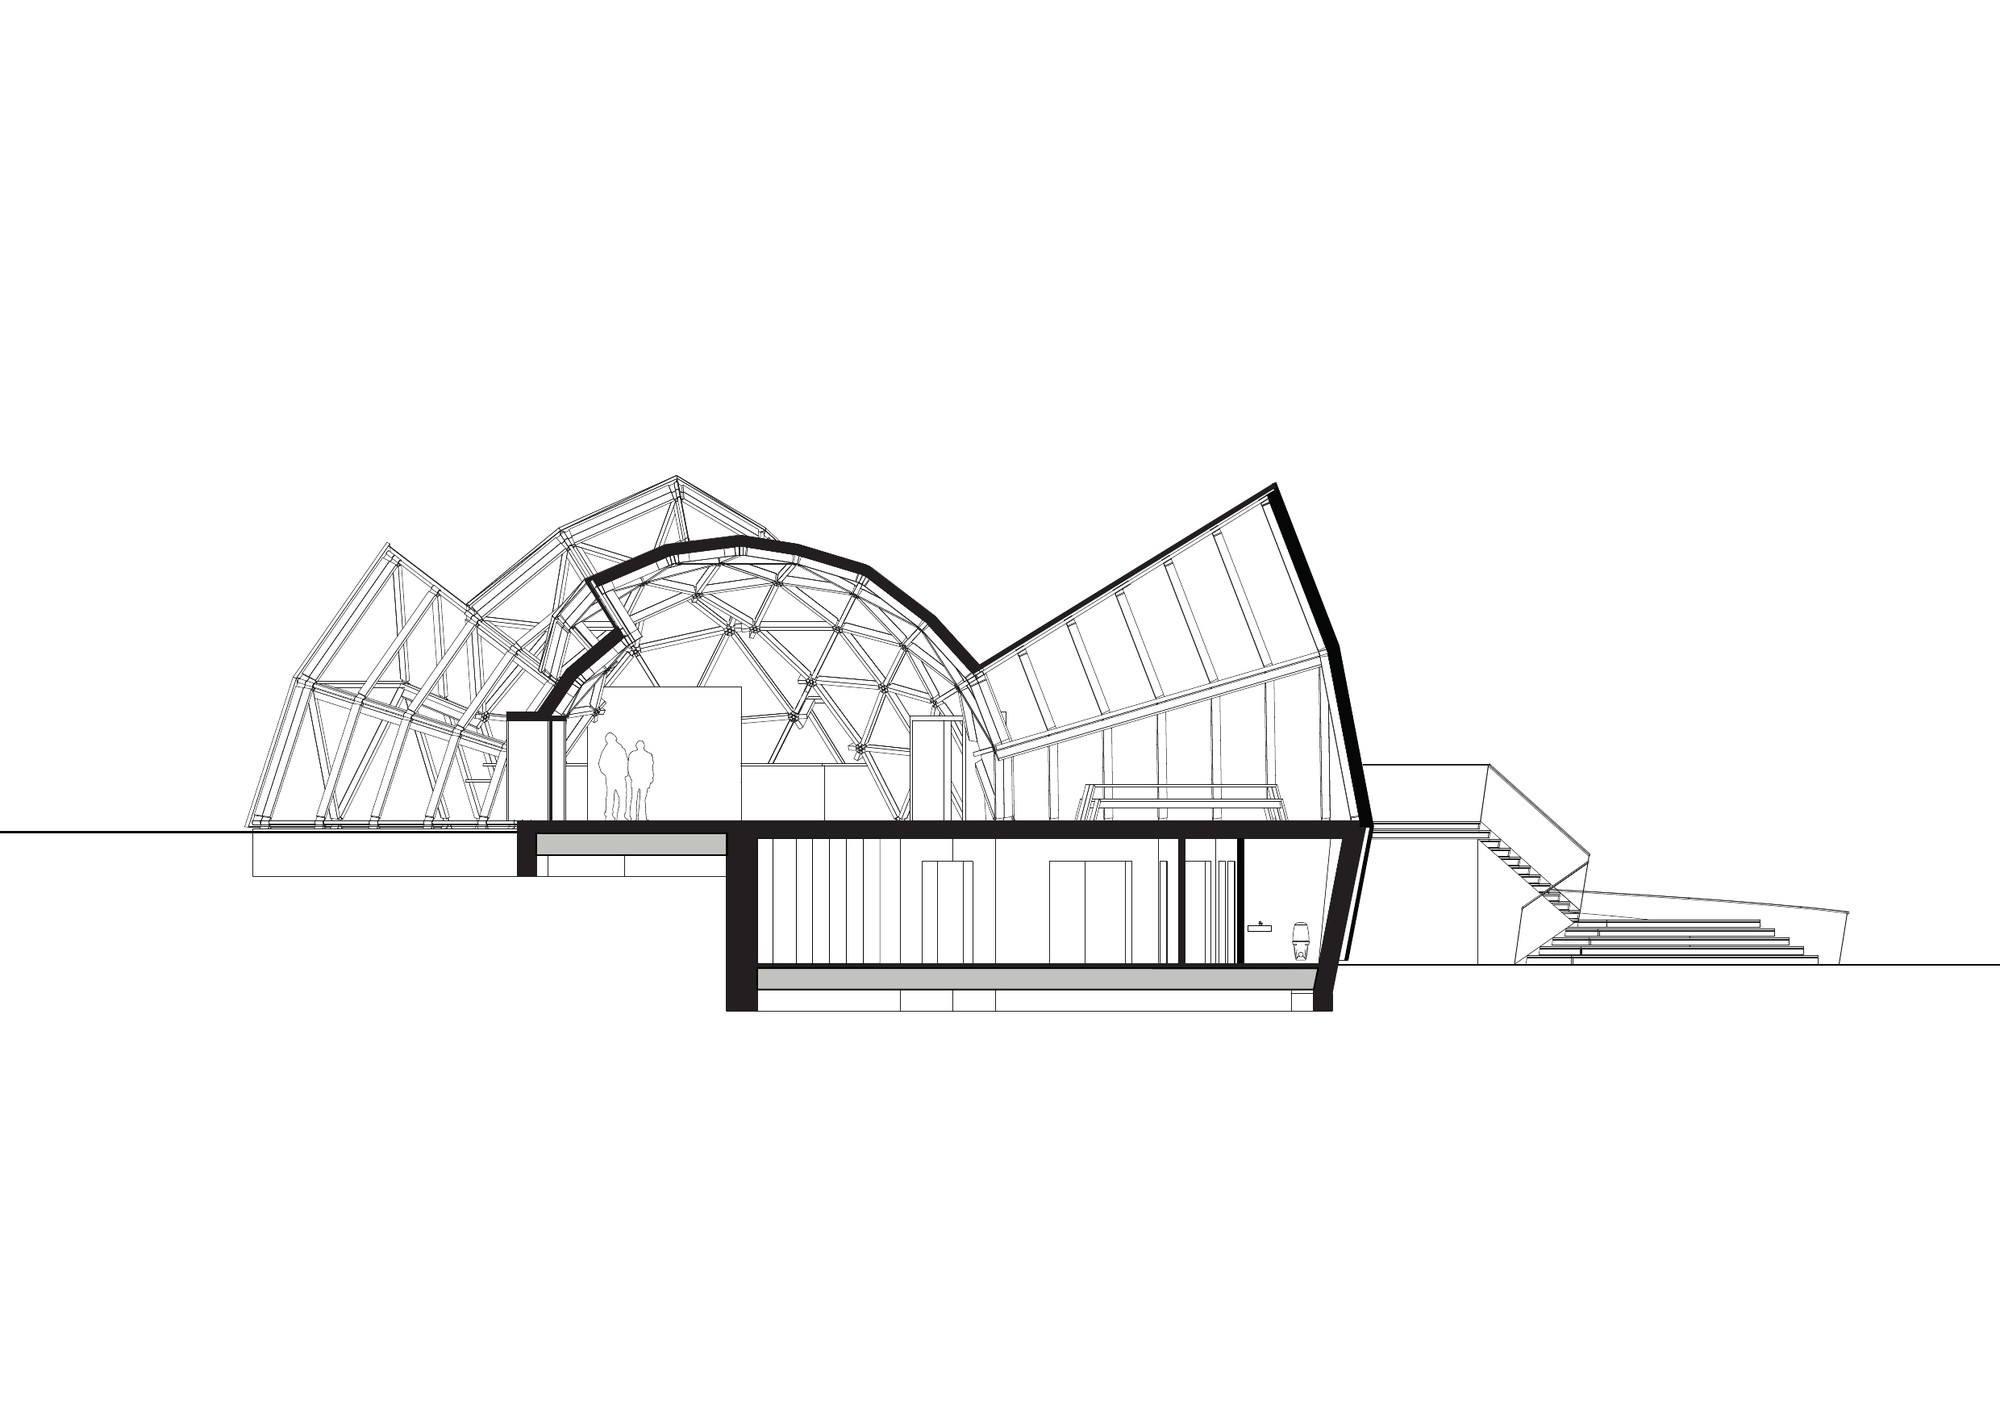 Tejlgaard Jepsen Transform A Temporary Geodesic Dome Into Permanent Structure